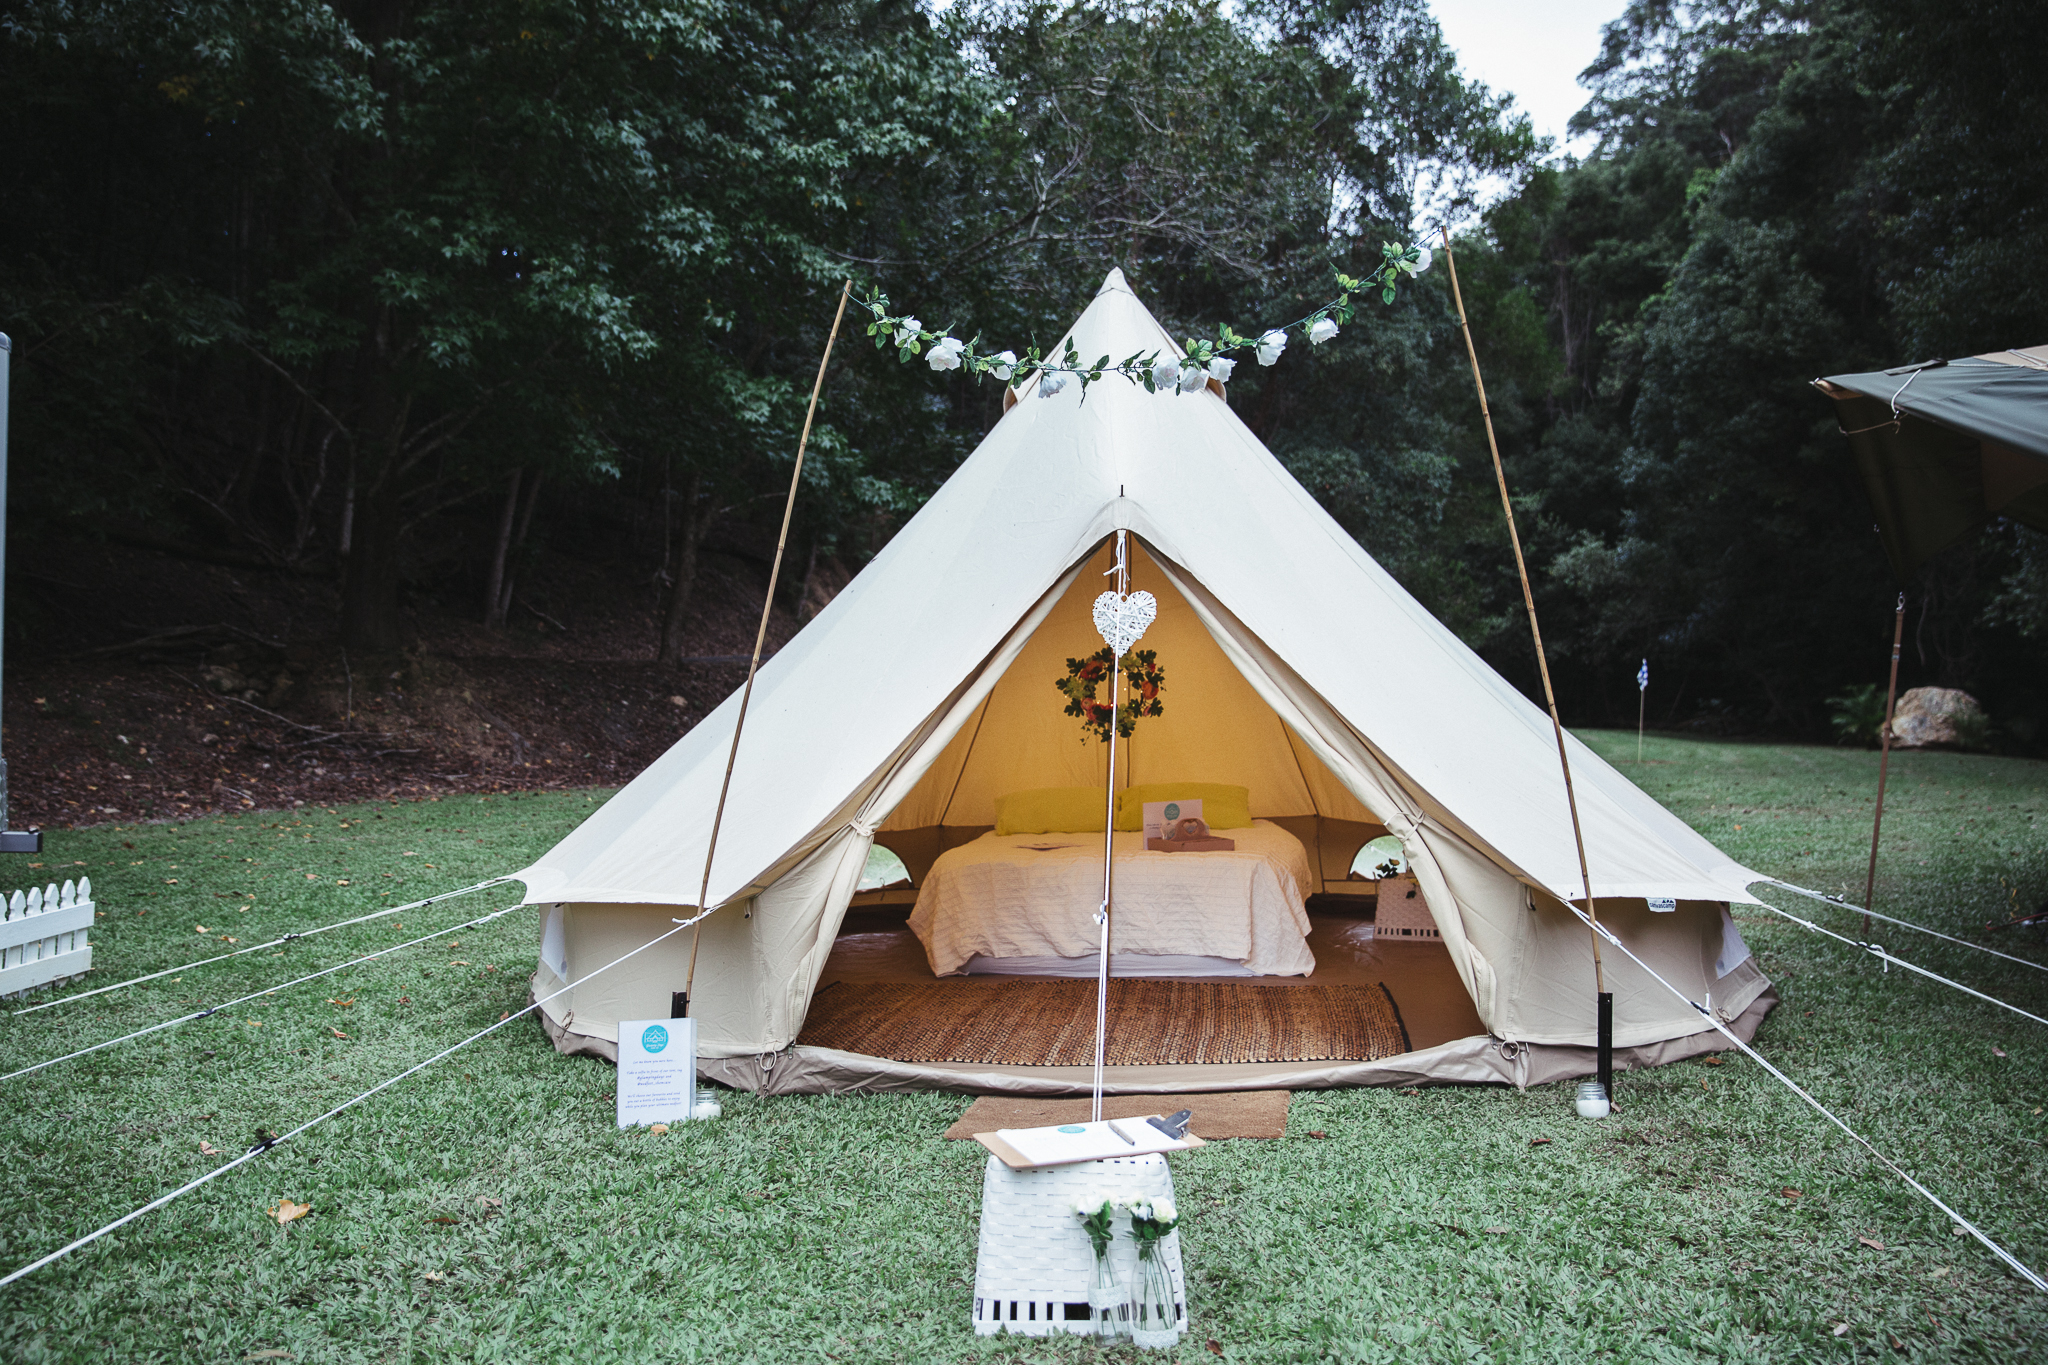 Gold coast tipis, wedfest, wedding, marquee hire, gold coast, glamping